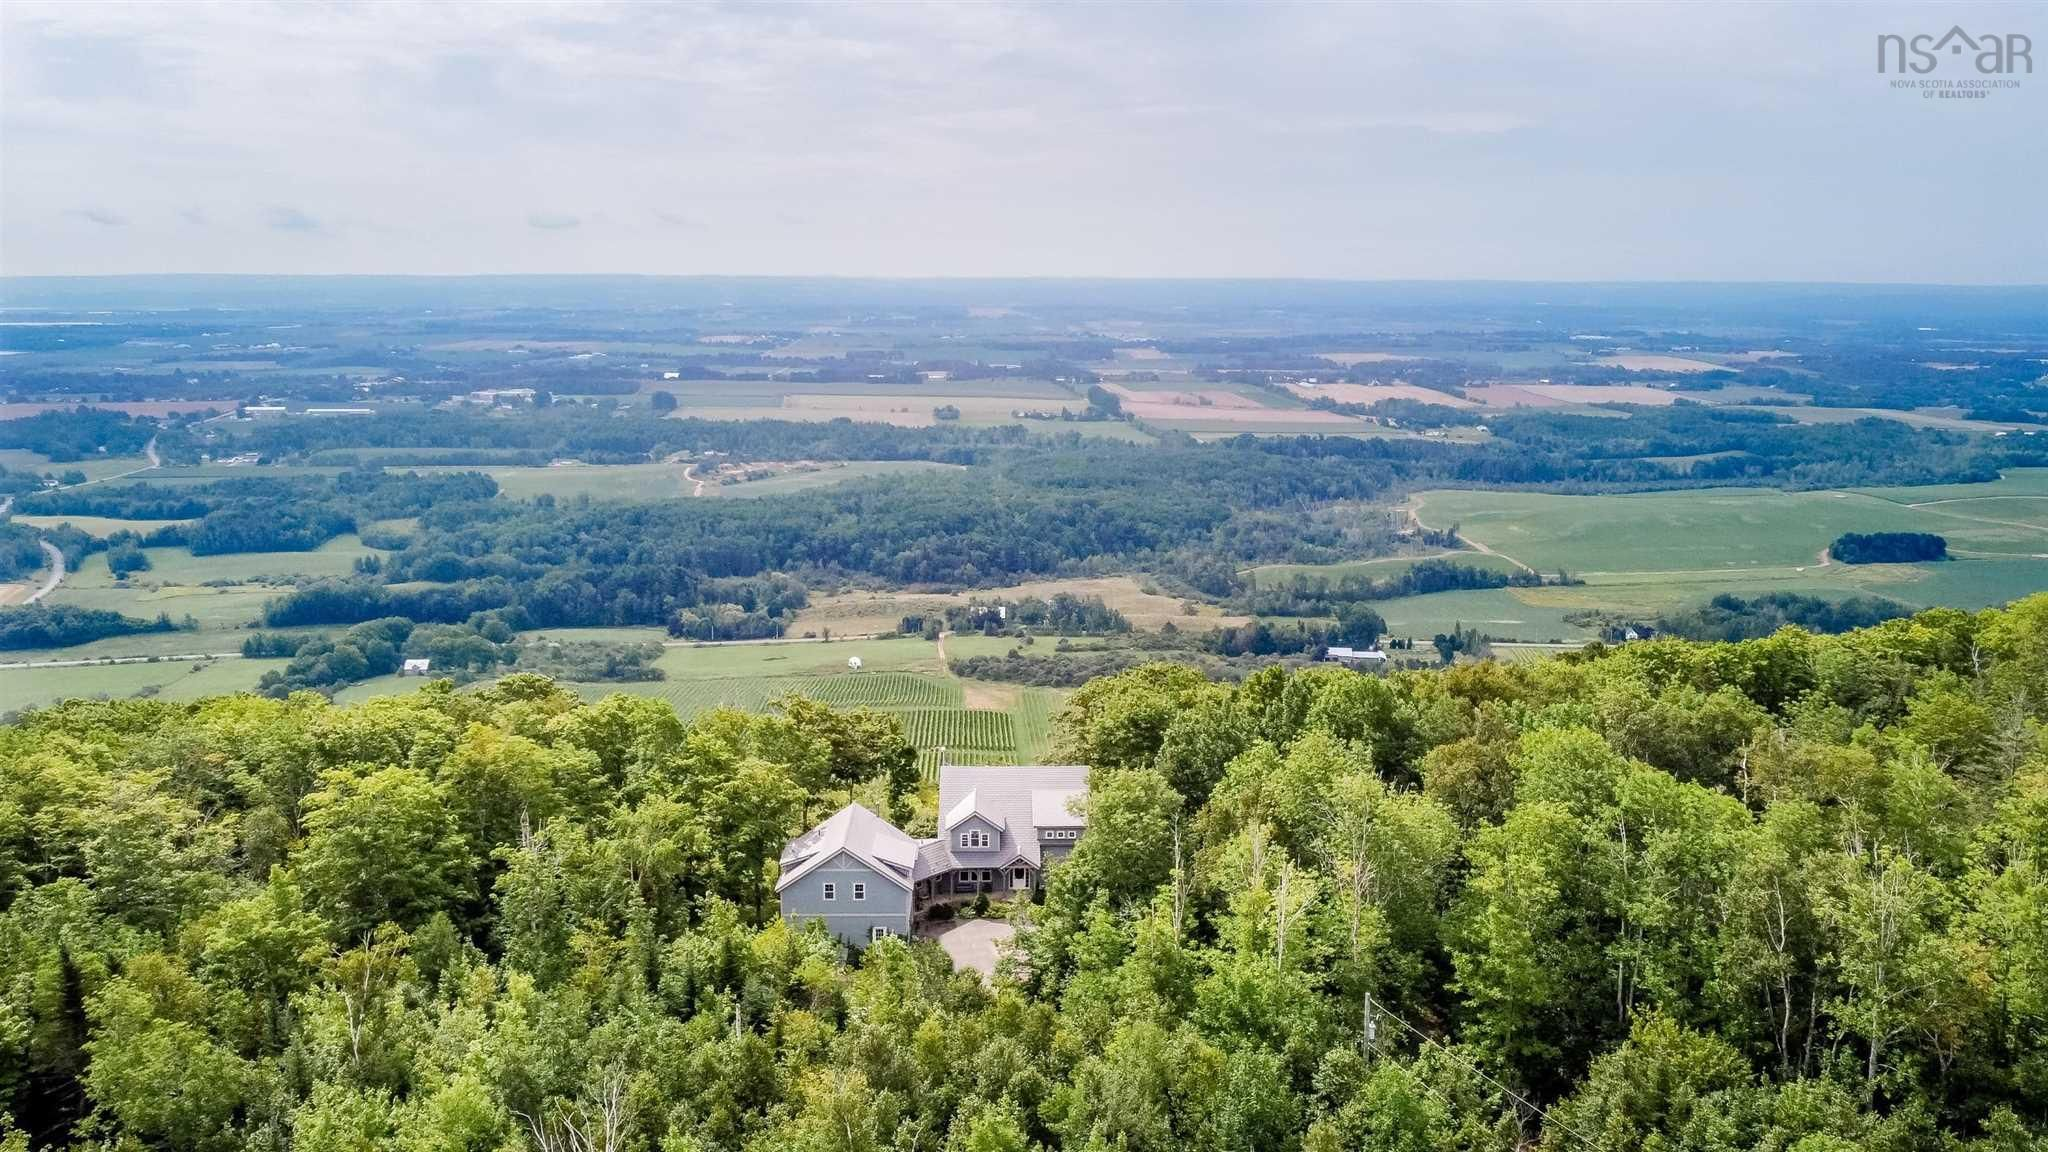 Main Photo: 1852 Gospel Road in Arlington: 404-Kings County Residential for sale (Annapolis Valley)  : MLS®# 202122493